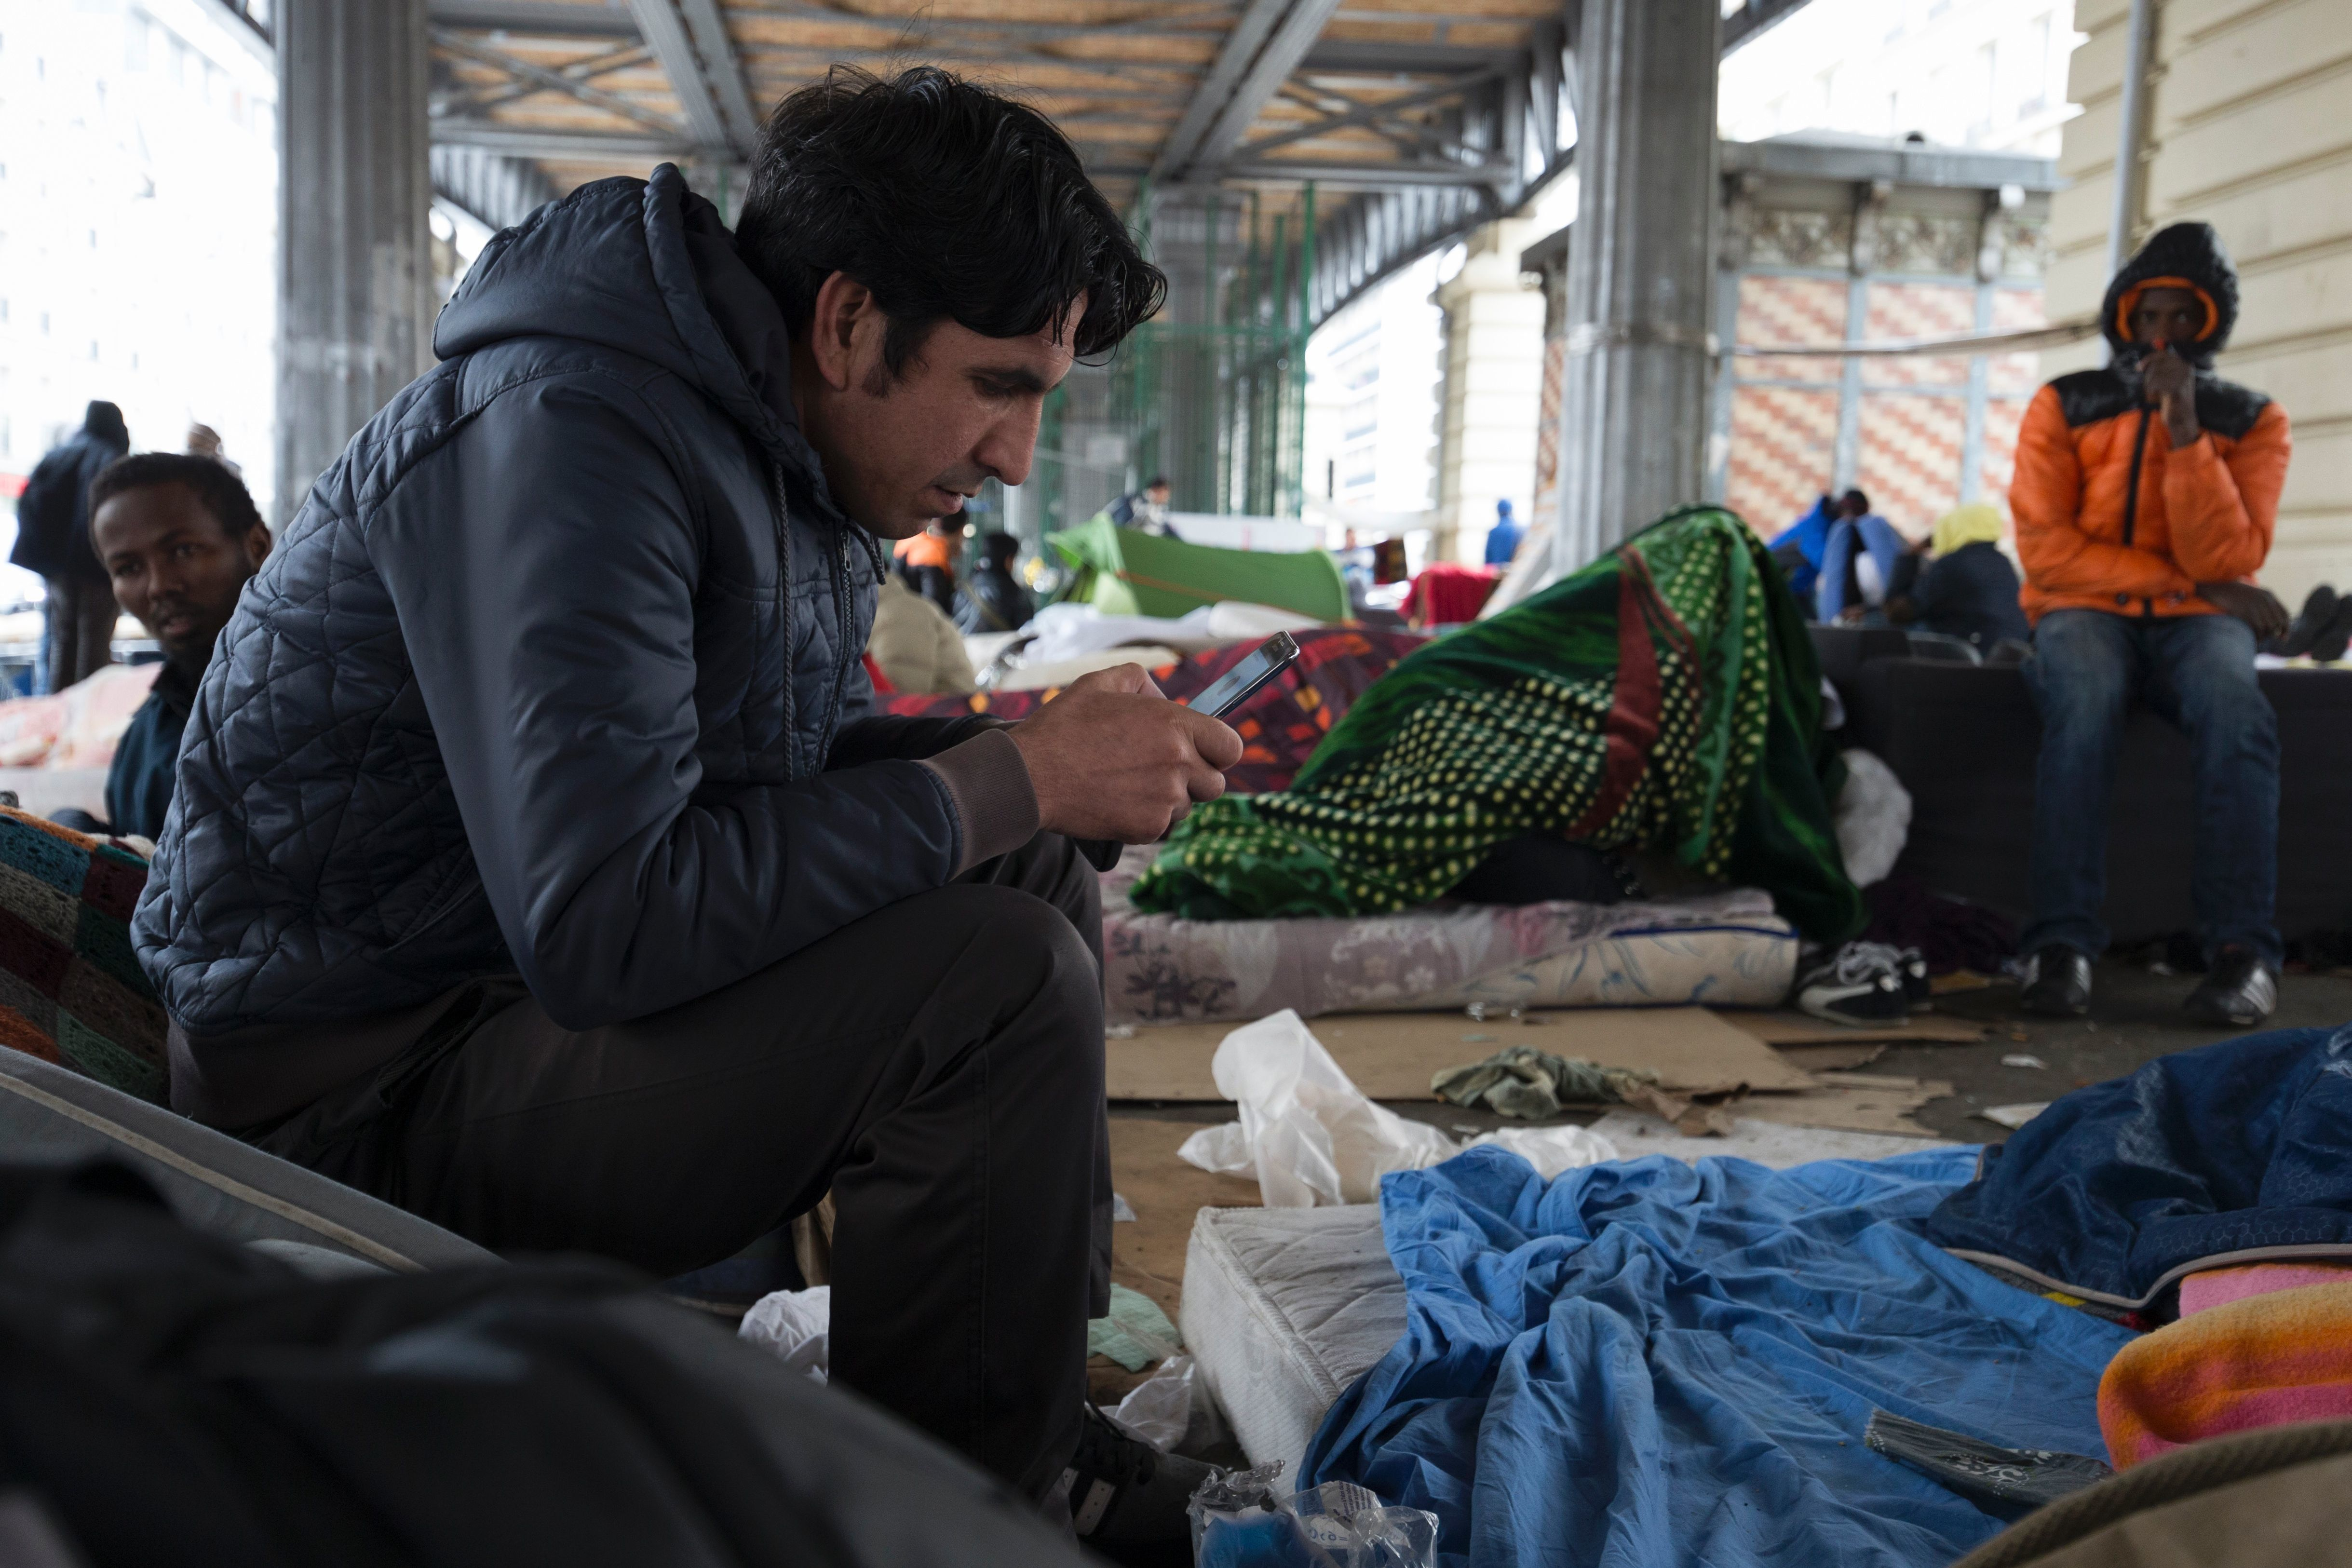 An Afghan migrant checks his mobile phone in a makeshift camp of refugees and migrants from Afghanistan, Sudan, Somalia, Erytrea, set under the Paris elevated railroad near the Stalingrad subway station on March 24, 2016. More than 100,000 migrants crossed the Mediterranean Sea in the first two months of 2016 alone, according to the United Nations High Commissioner for Refugees (UNHCR). / AFP / JOEL SAGET        (Photo credit should read JOEL SAGET/AFP/Getty Images)